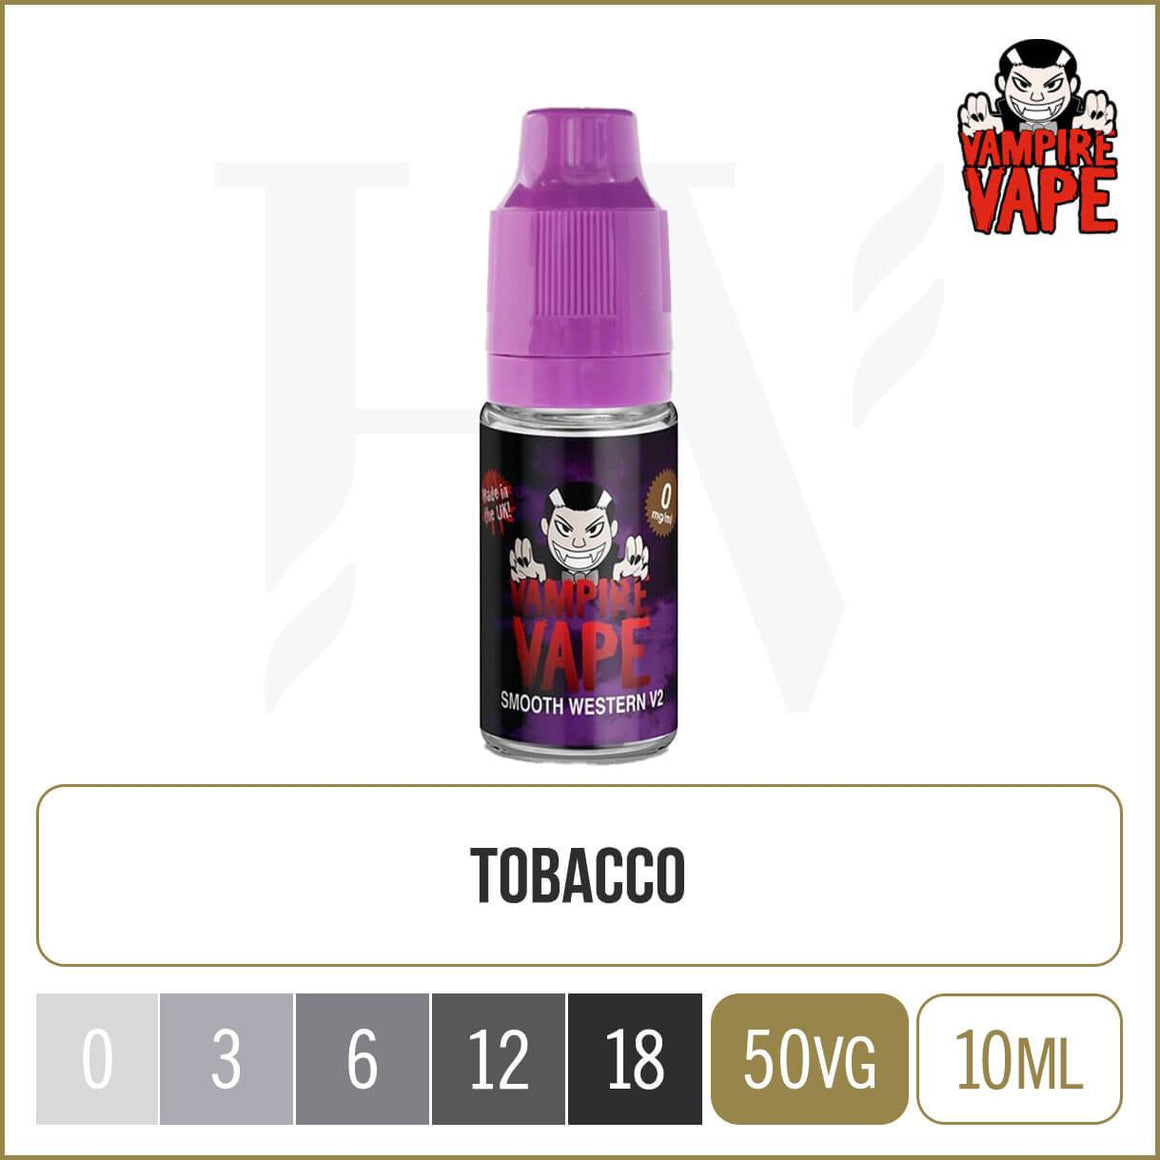 Vampire Vape smooth western e liquid 10ml